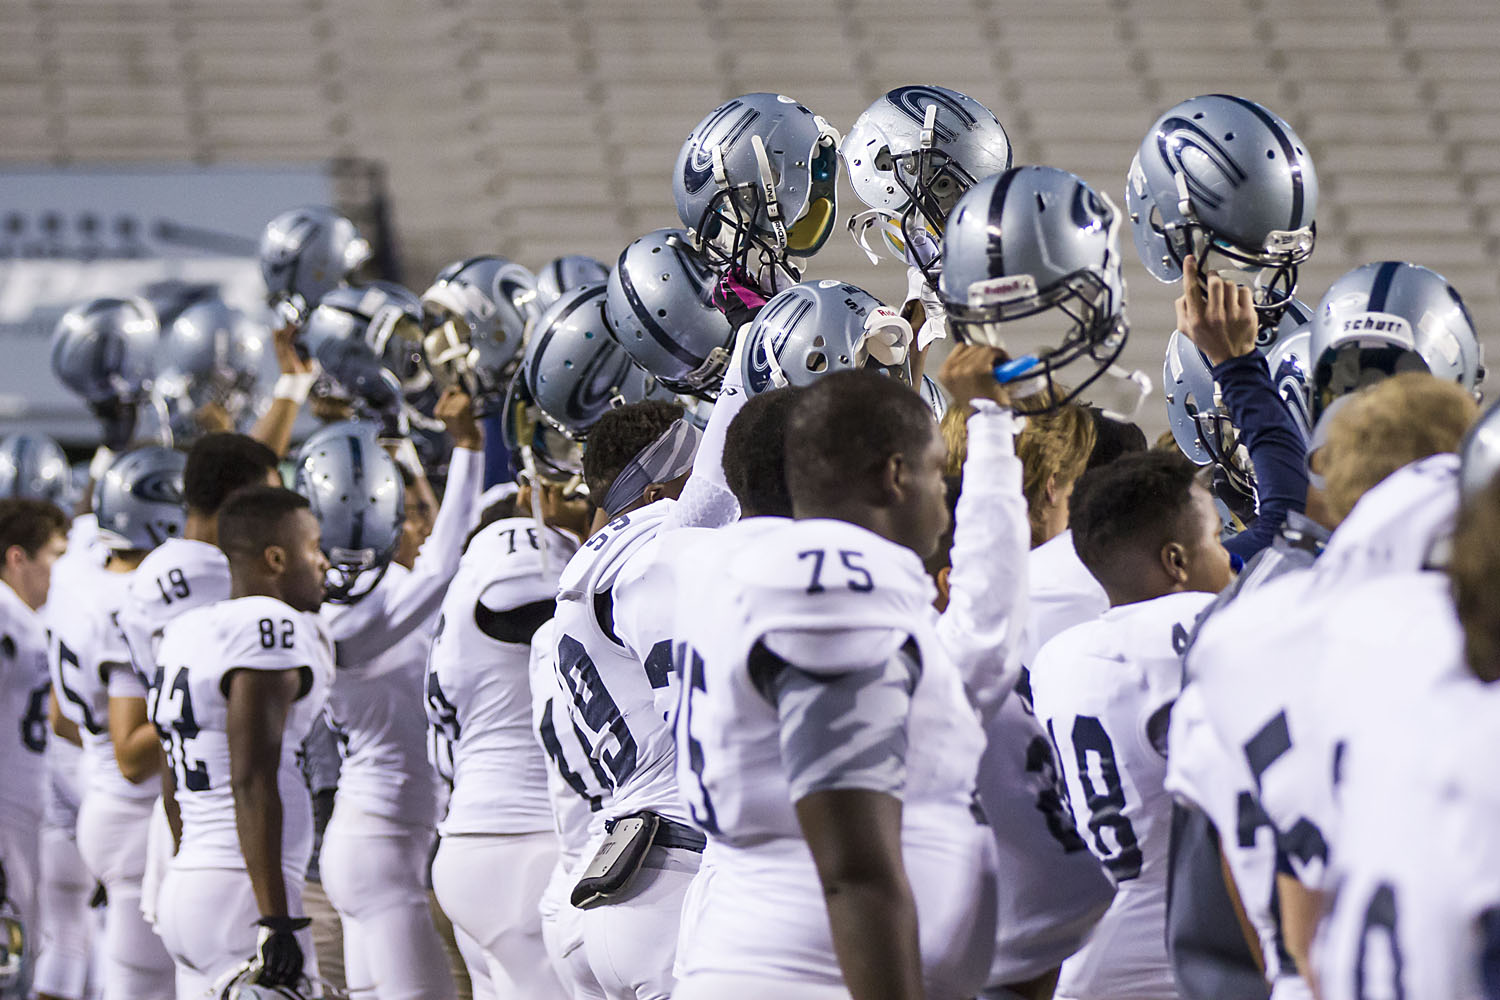 Clay-Chalkville adds assistant football coach